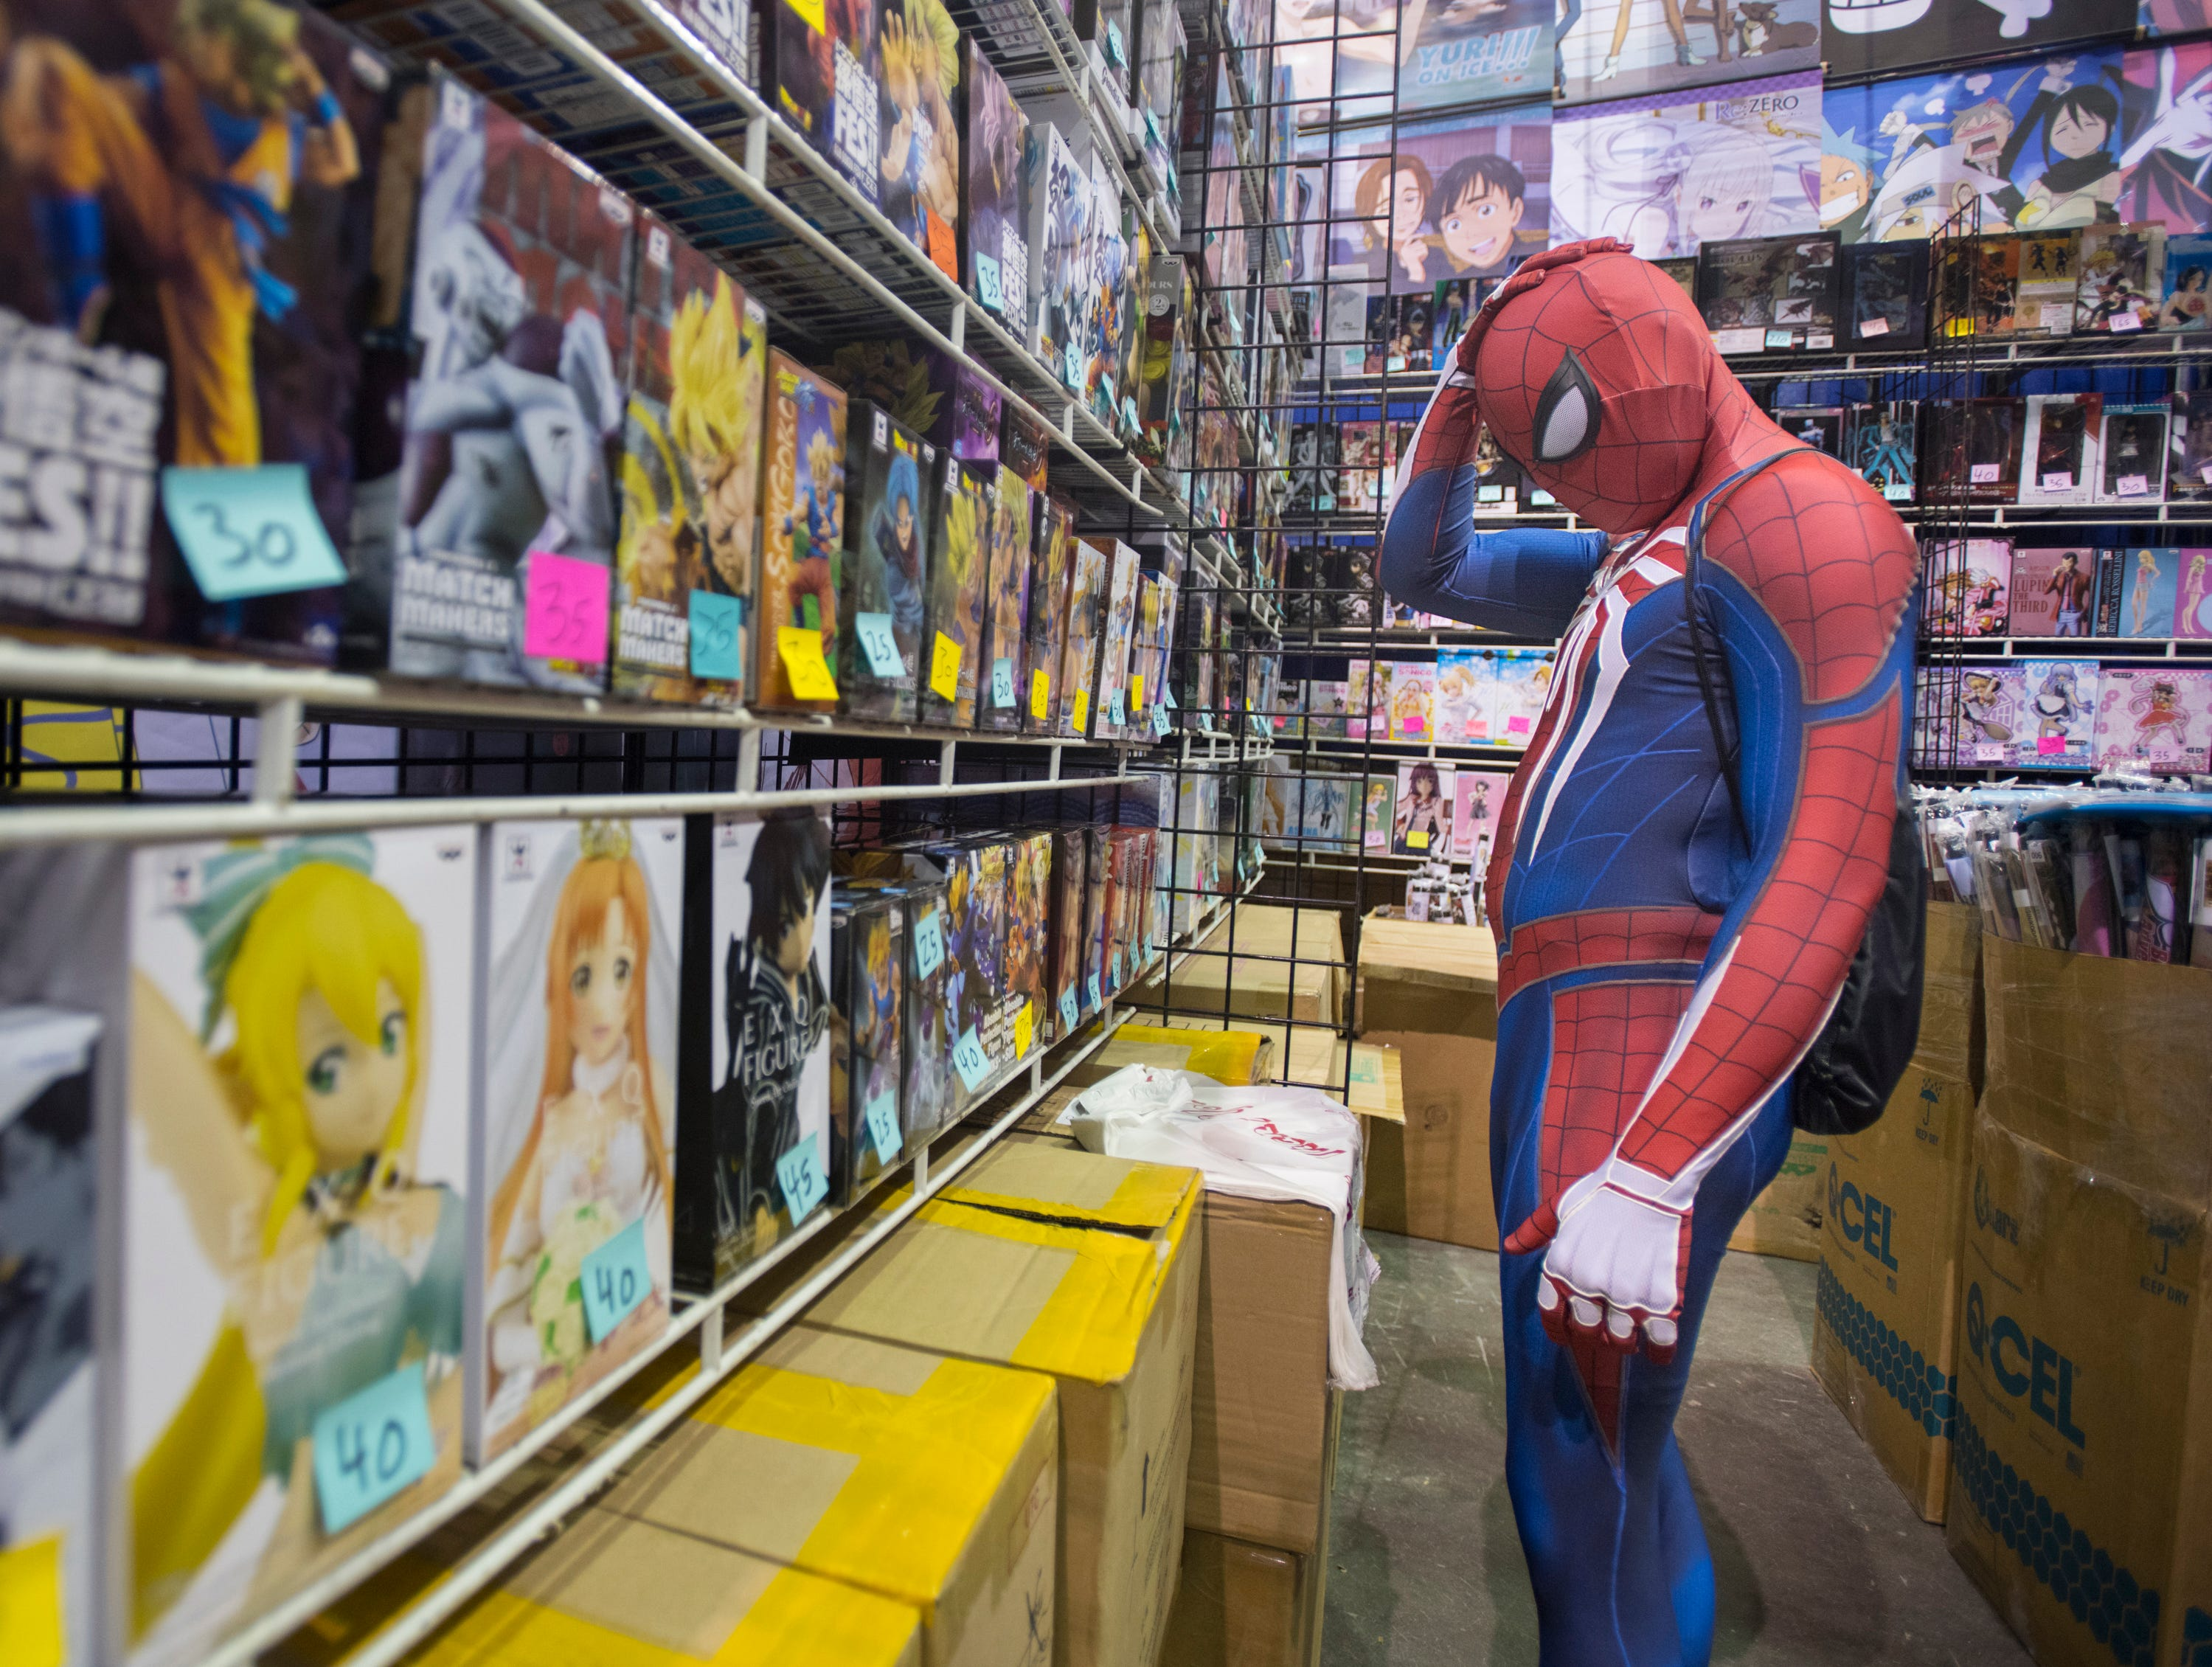 Spiderman - AKA Caleb Stead, of Milton, shops during Pensacon at the Pensacola Bay Center on Friday, February 22, 2019.